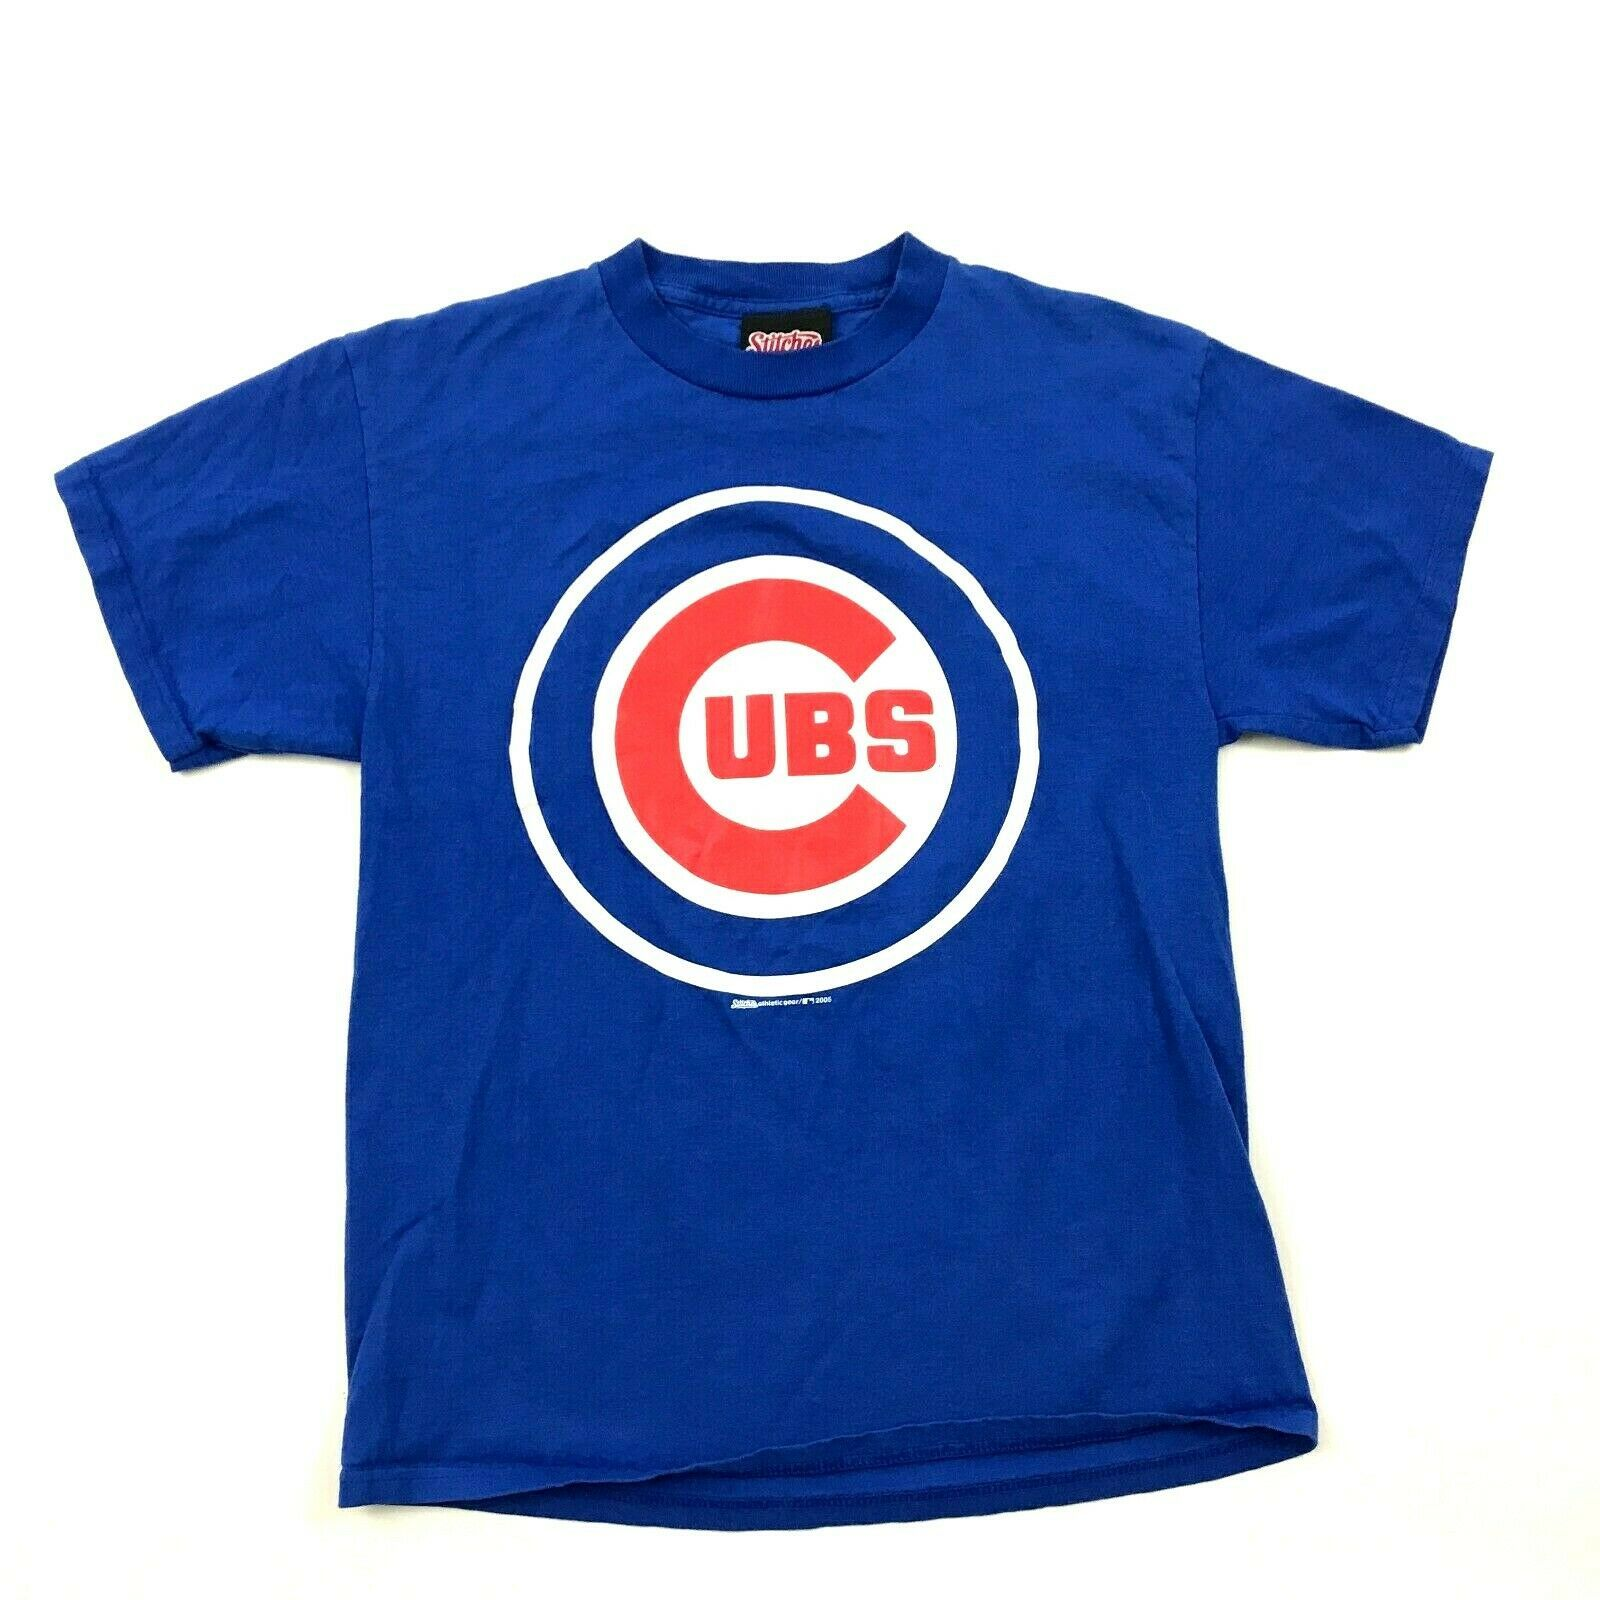 Primary image for Stitches Athletic Gear Chicago Cubs Shirt Adult Medium M MLB Baseball Team Tee